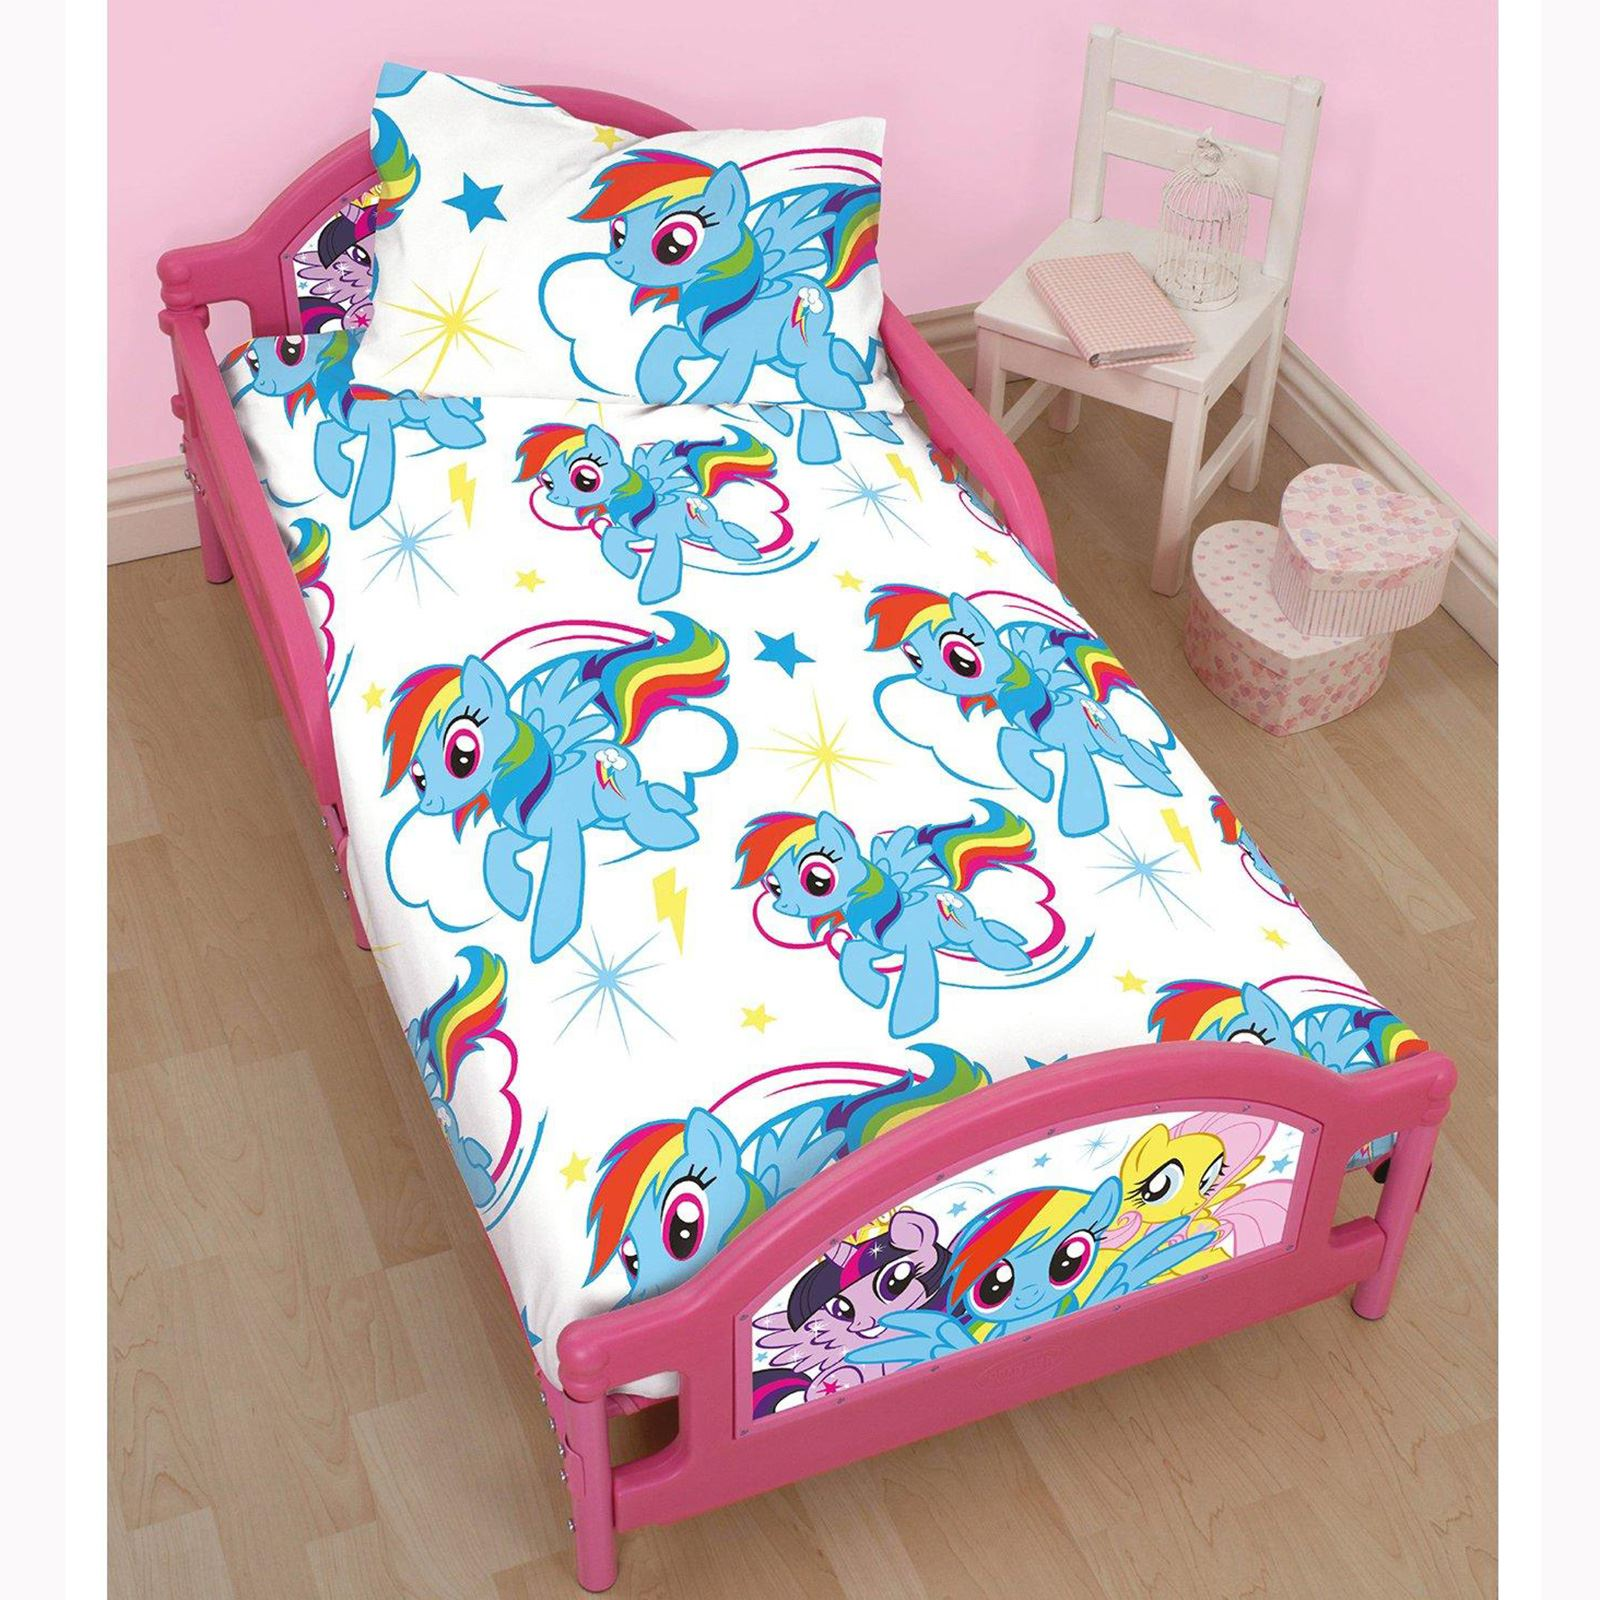 MY LITTLE PONY DASH JUNIOR TODDLER BED MATTRESS